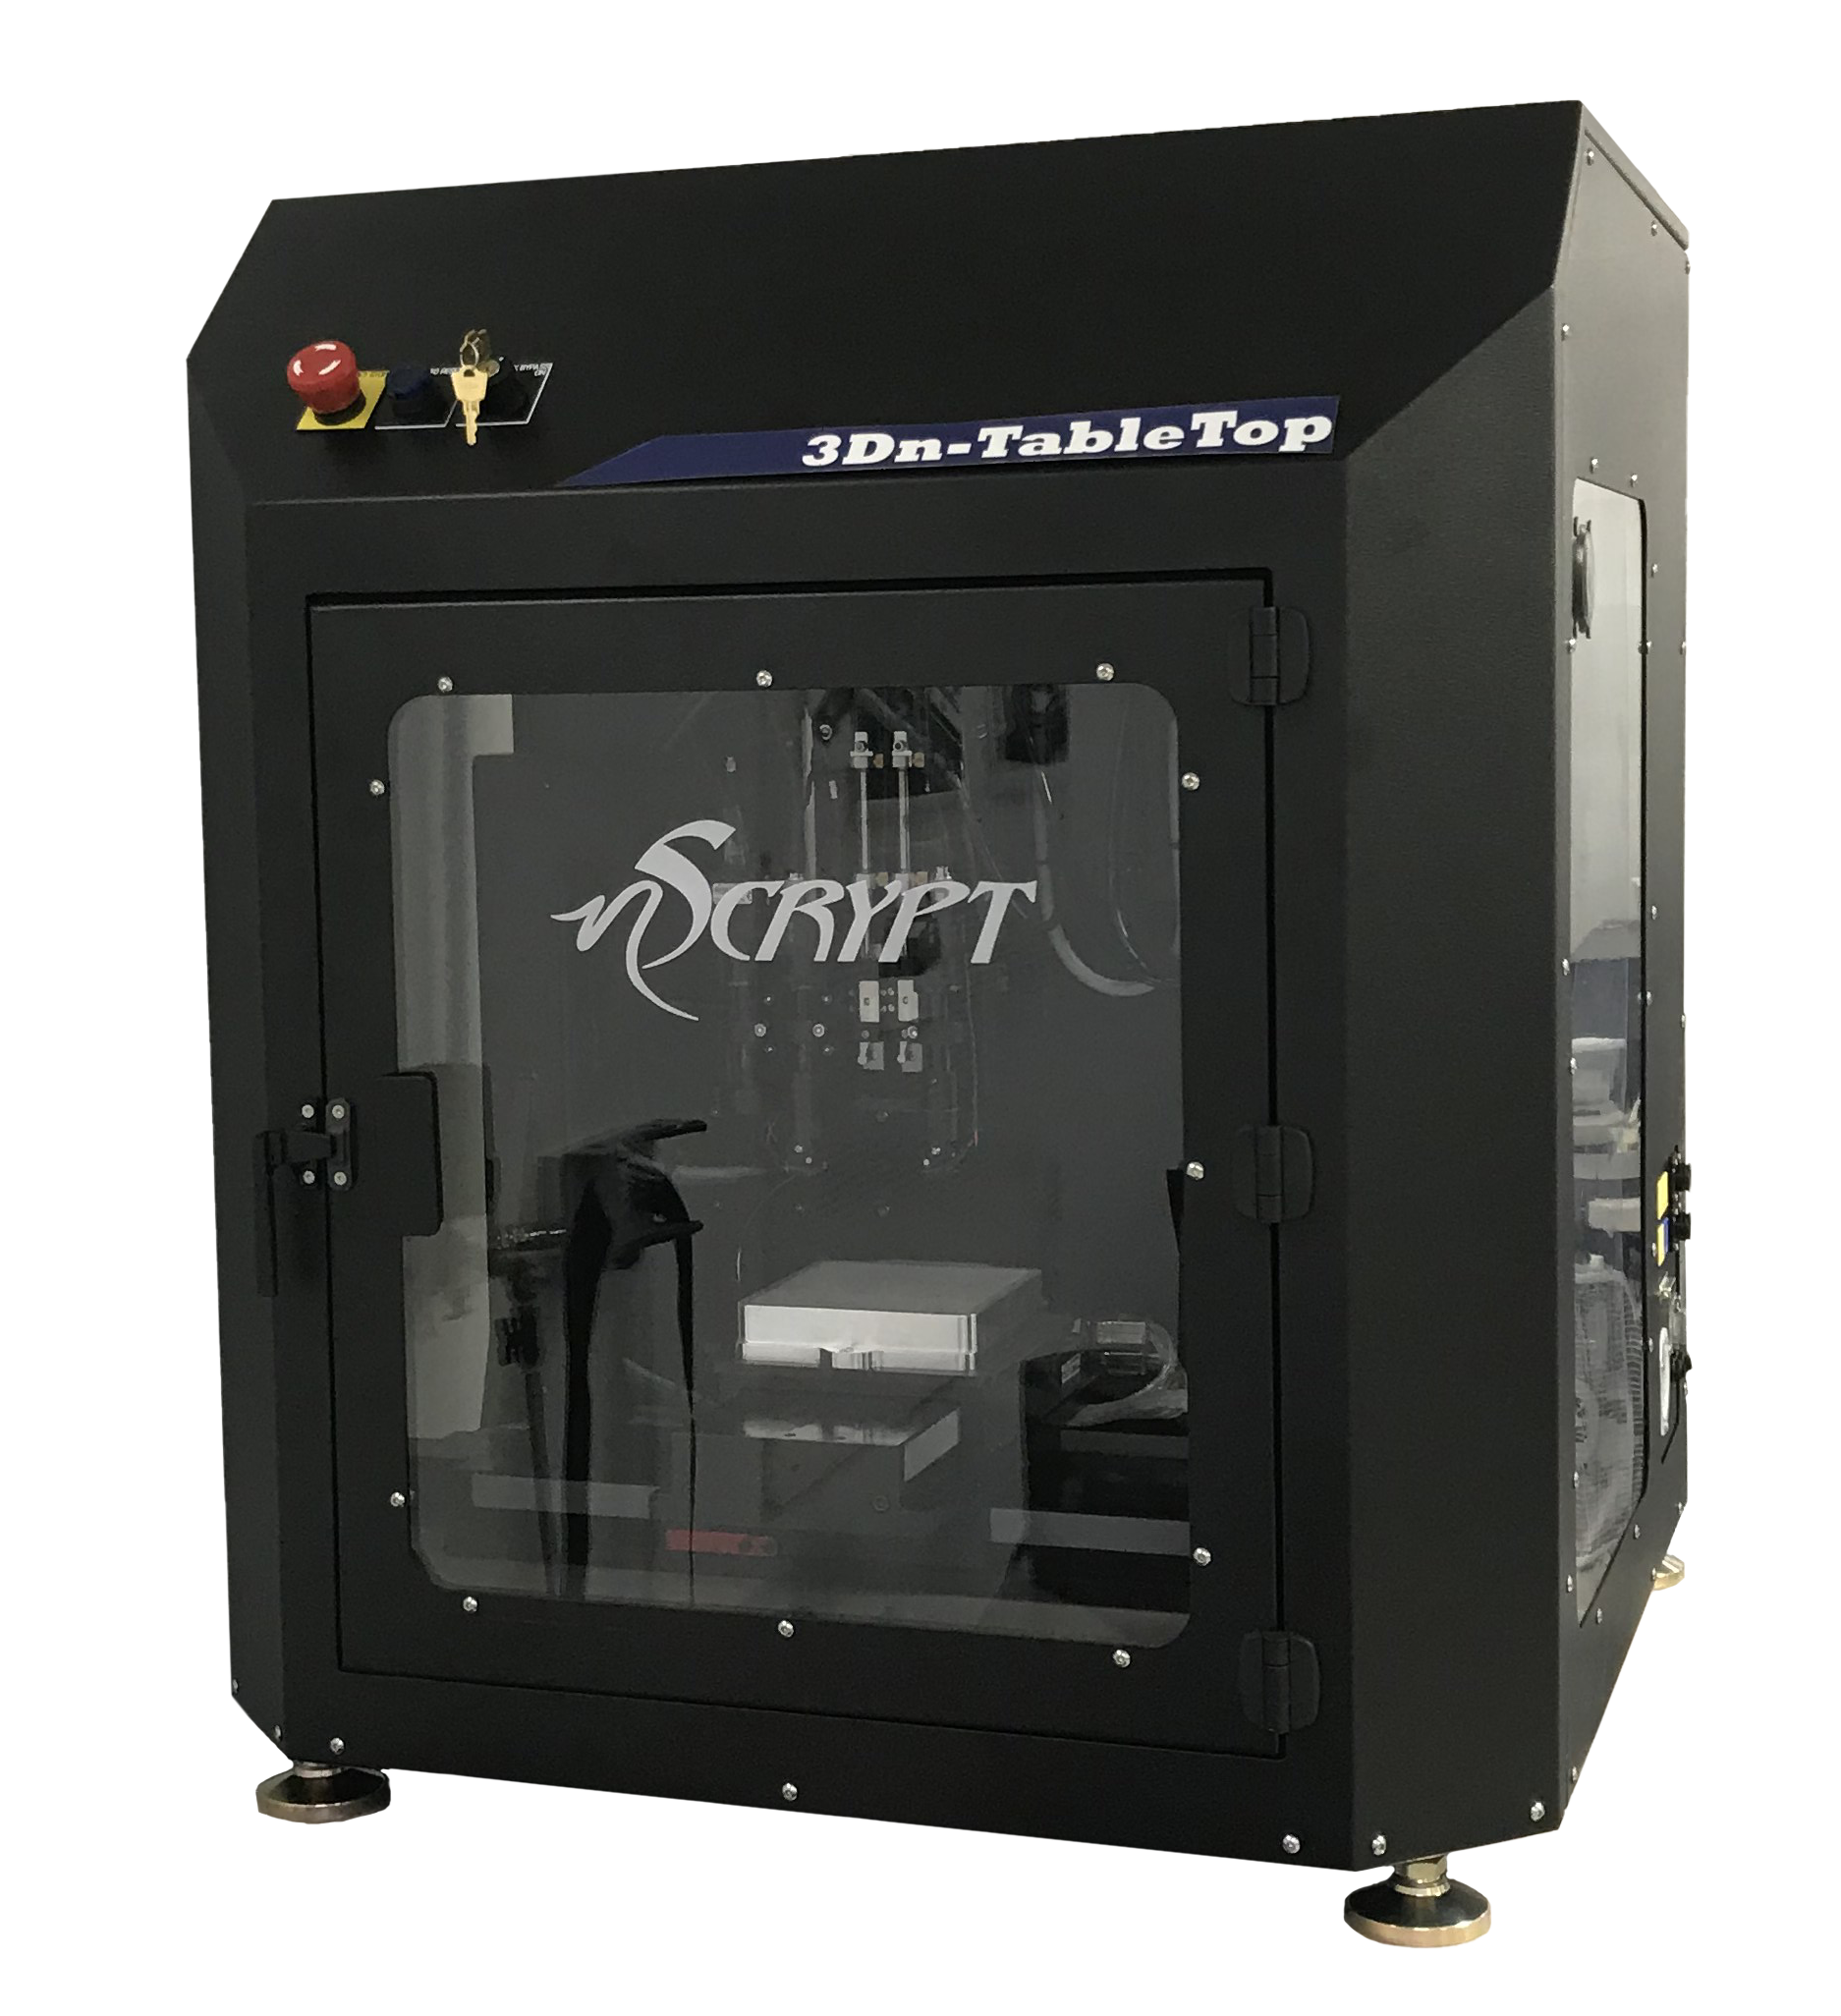 nScrypt's Factory in a Tool 3D printing system. Image via nScrypt.